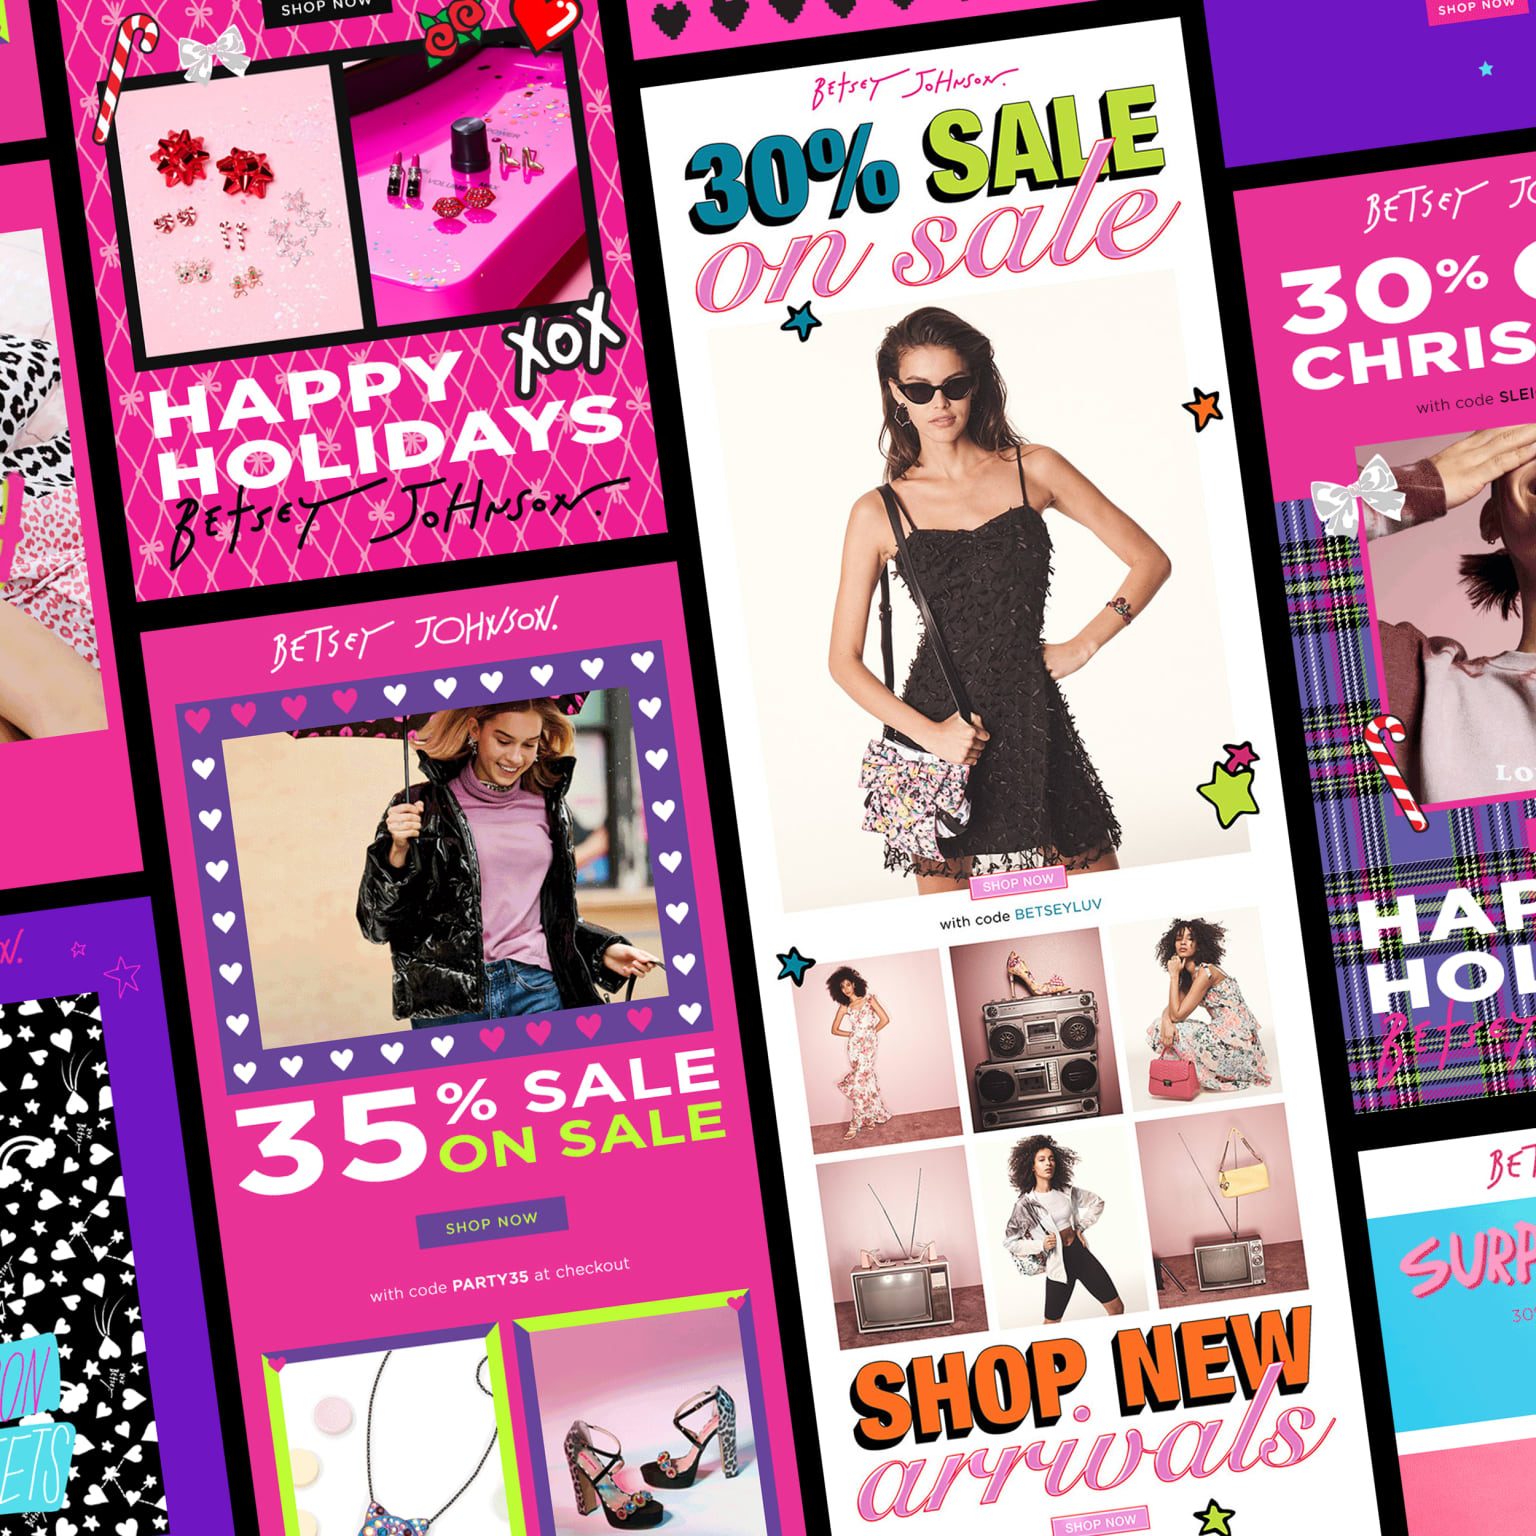 BETSEY JOHNSON EMAIL DESIGNS